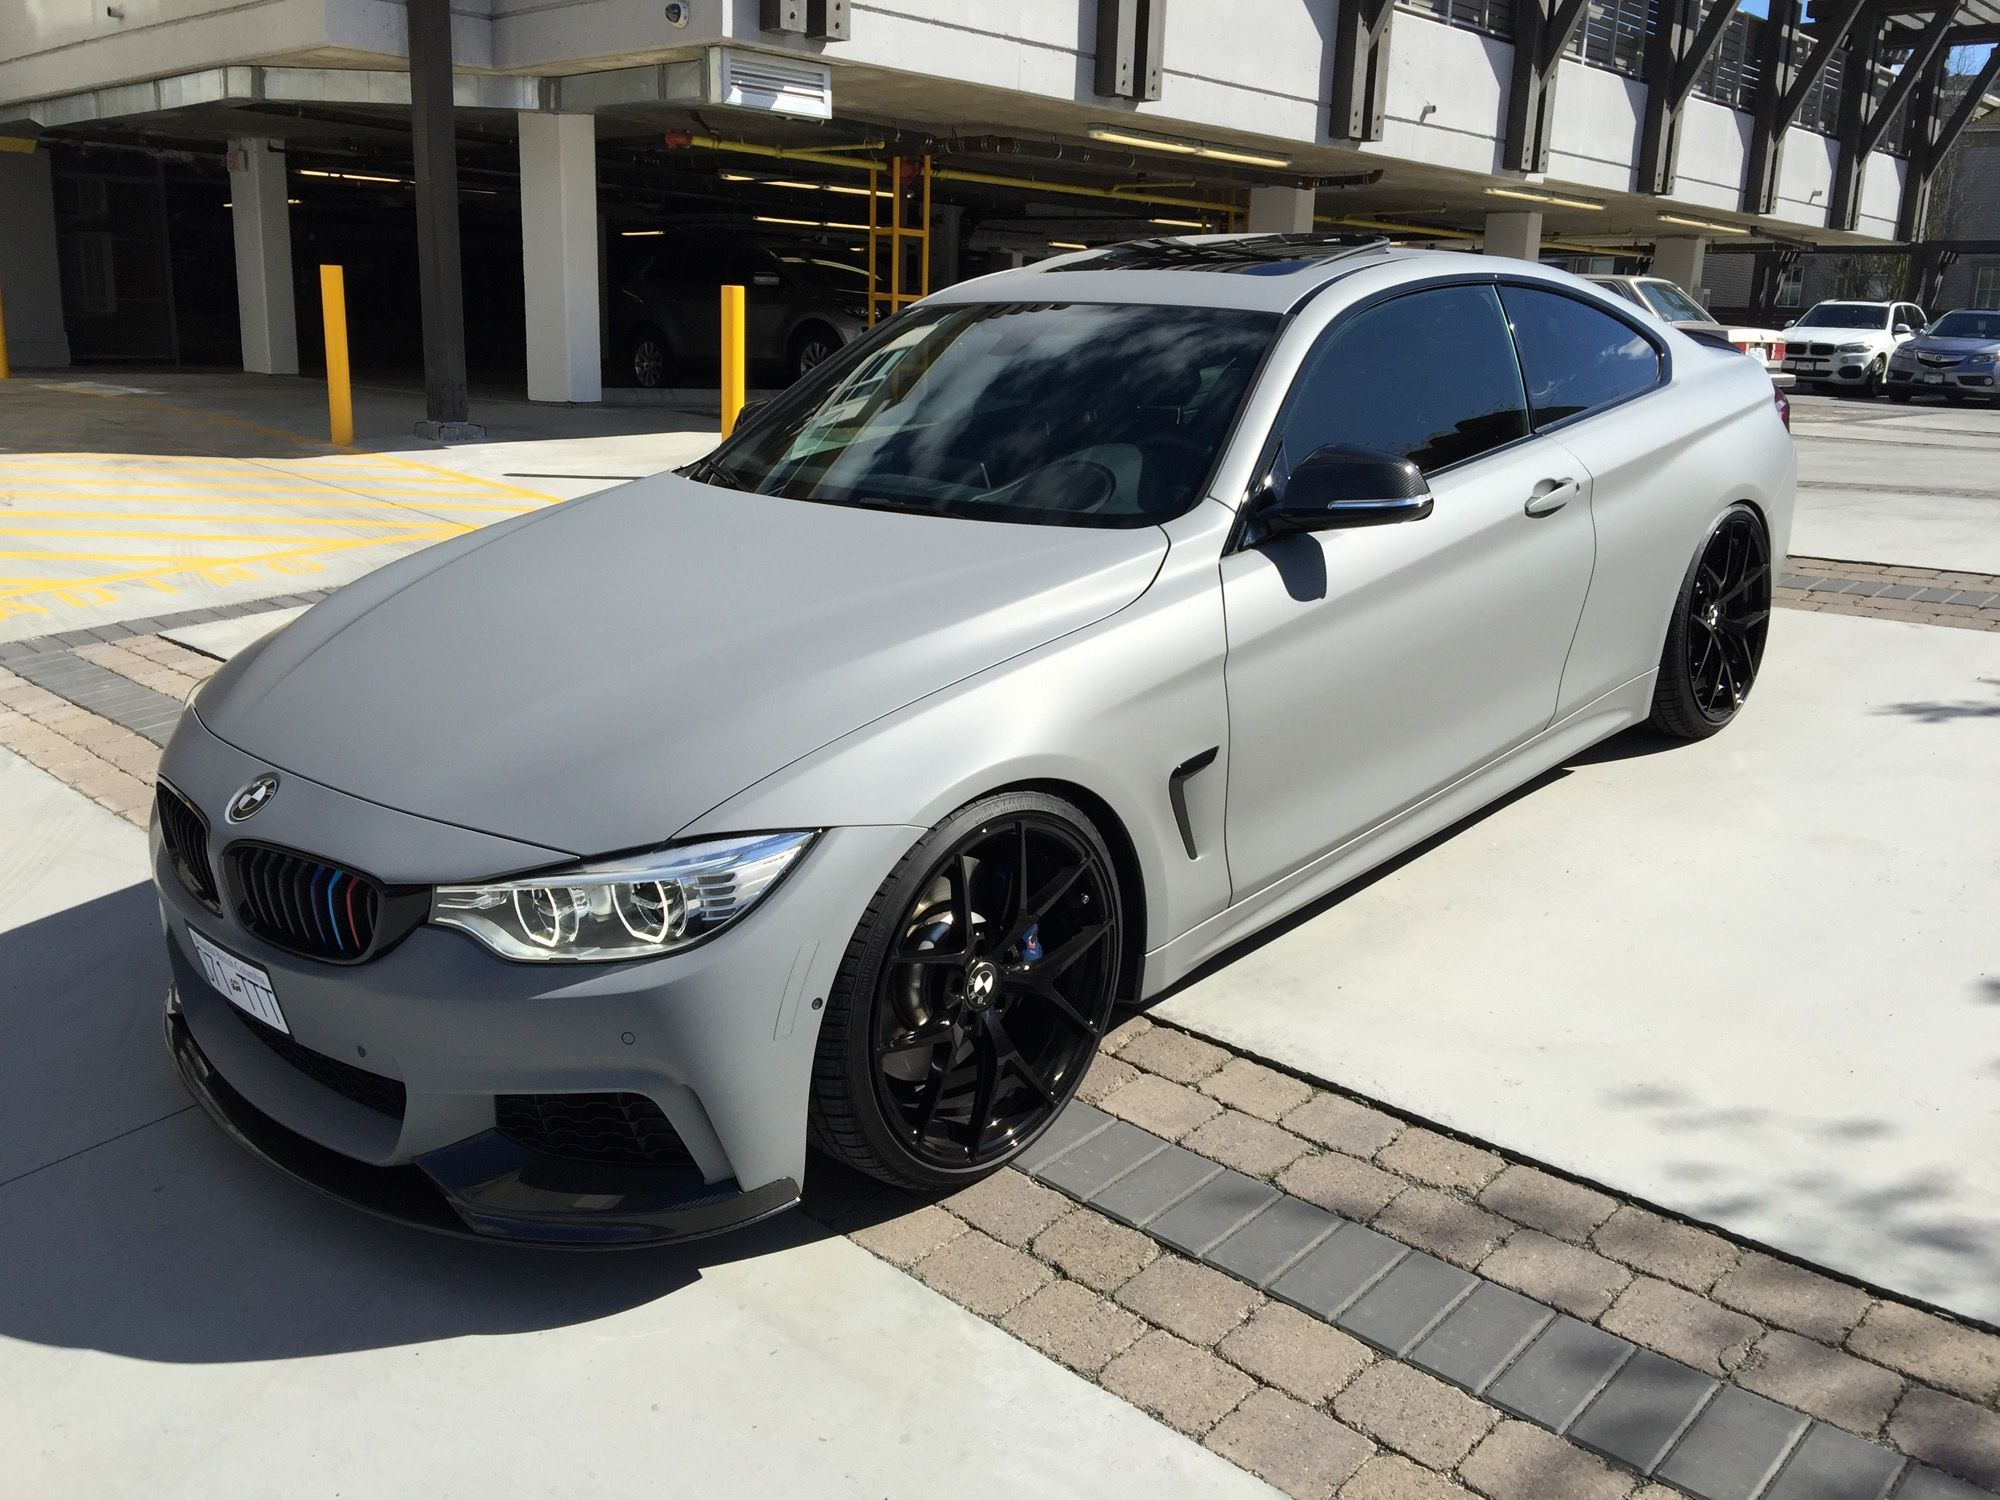 2017 435i M Performance Edition In Battle Ship Grey